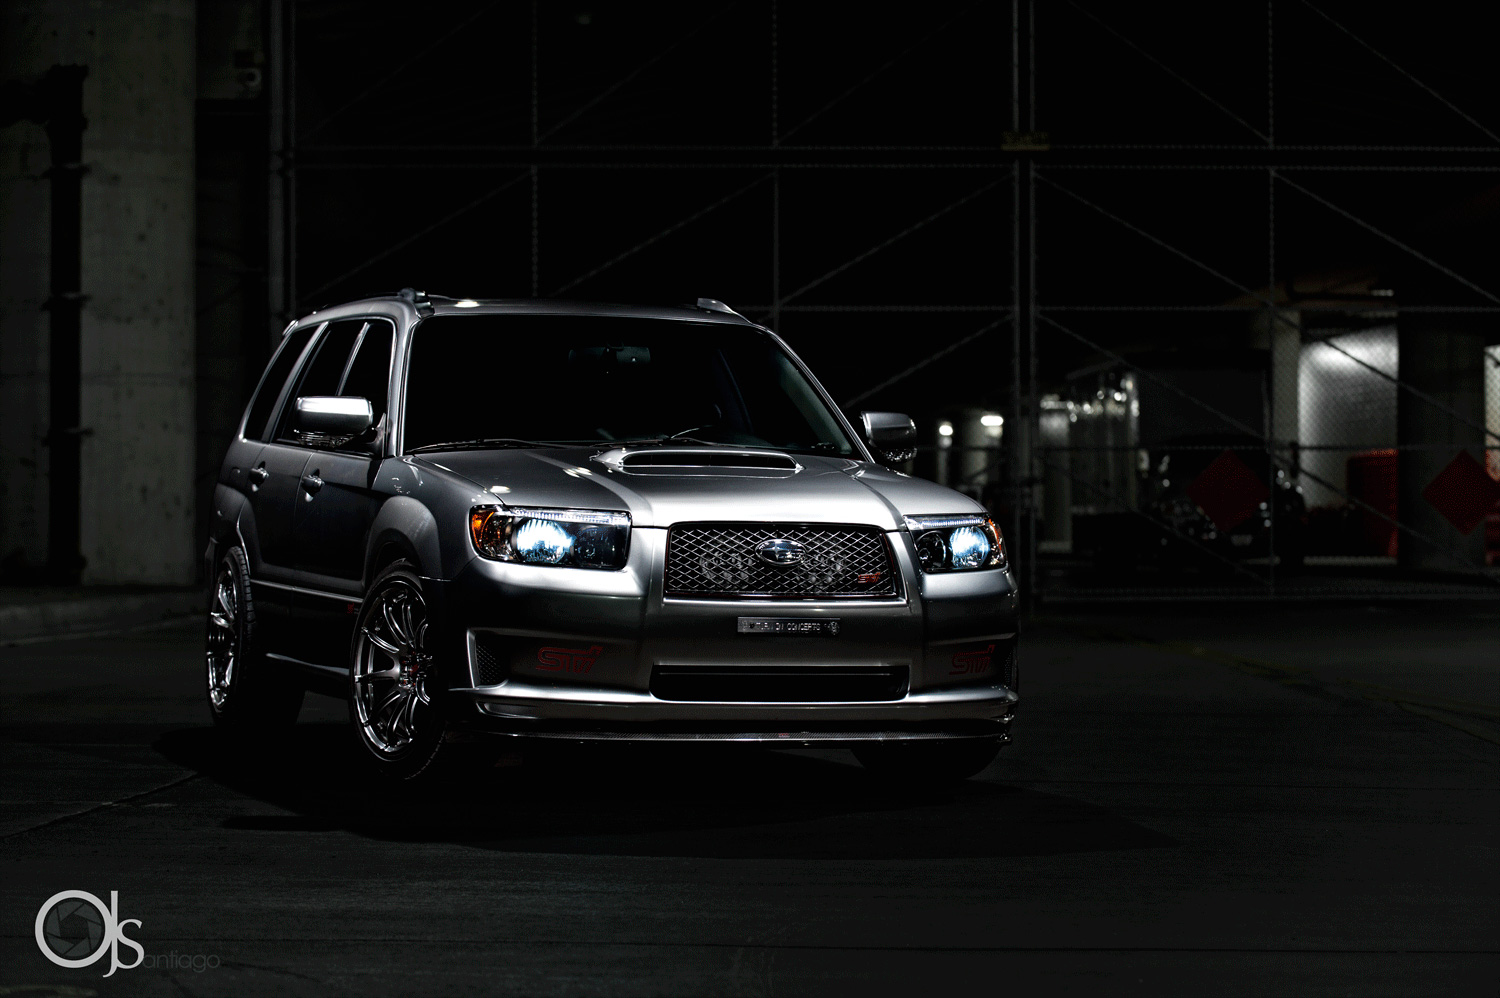 Top scoob the gray goose top scoob 025 canadian spec oem hid headlight assemblies with working manual leveling switches hella off road lamps behind the grill 2008 forester sports xt black tail vanachro Images